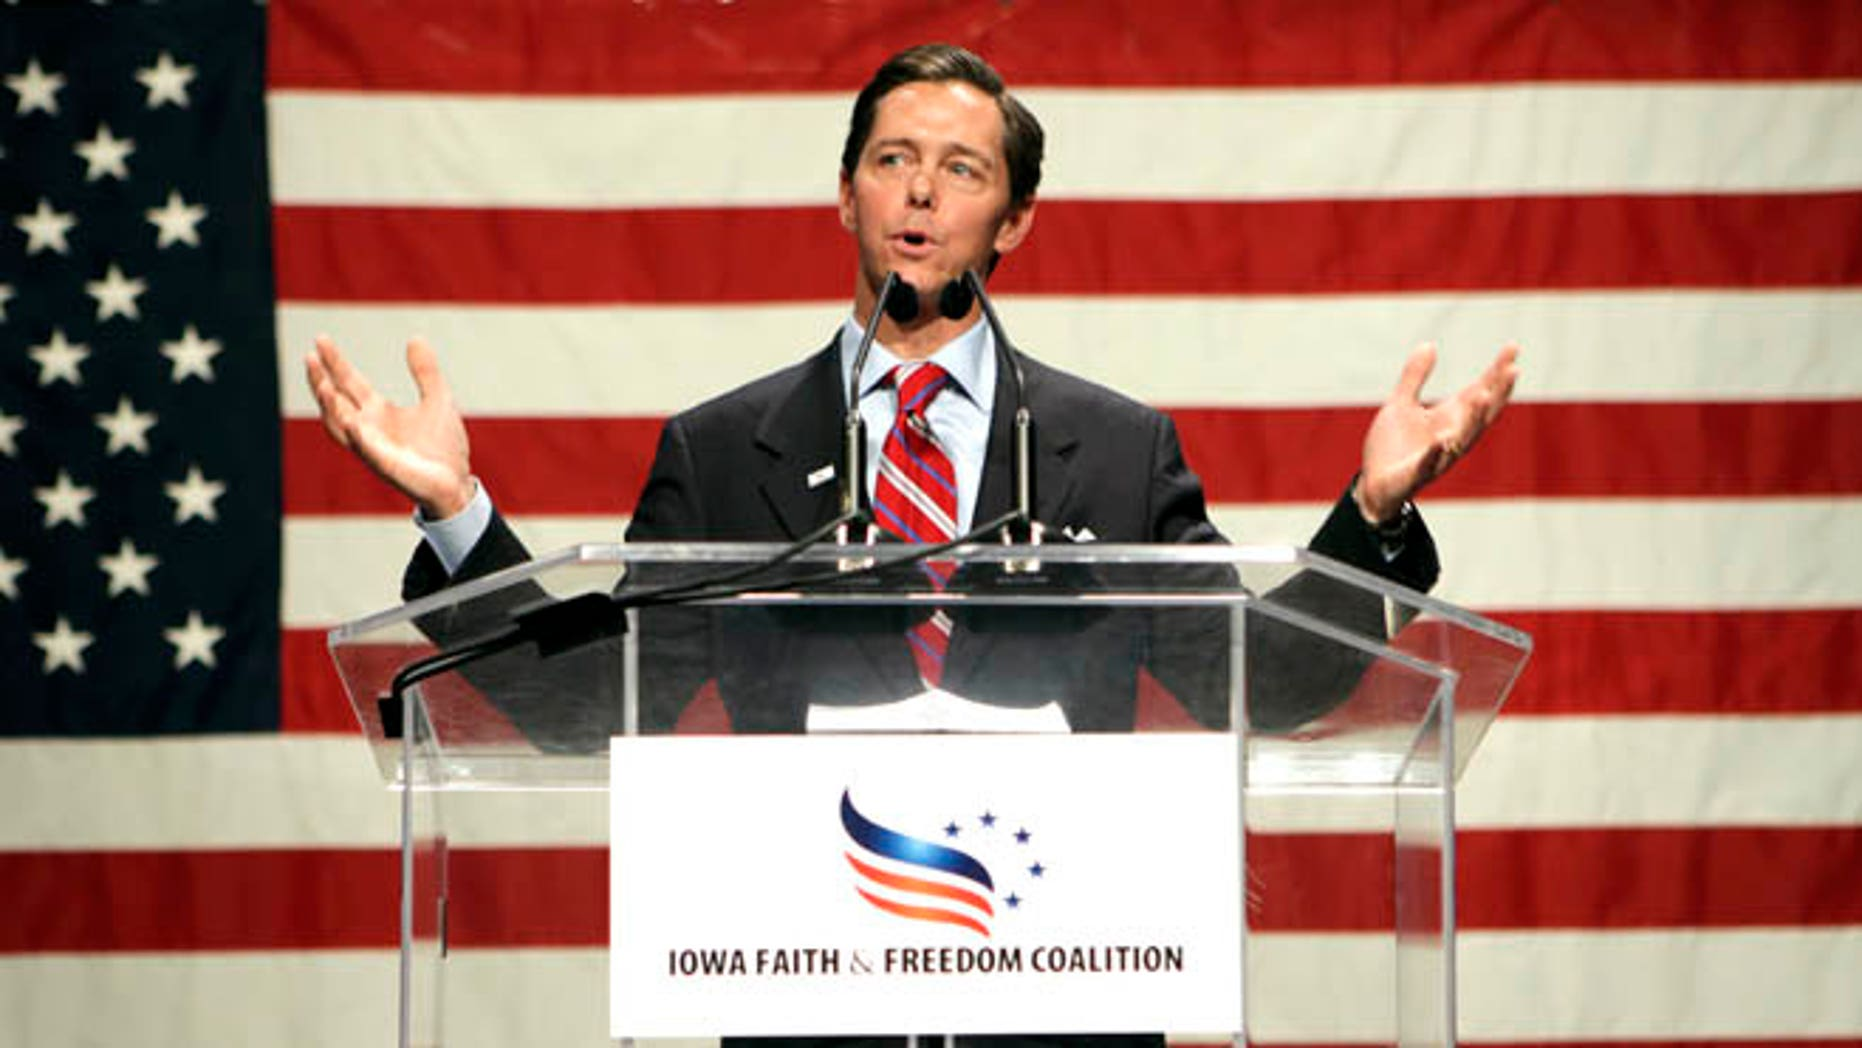 March 7, 2011. Ralph Reed, president of the national Faith & Freedom Coalition, speaks at the Iowa Faith and Freedom Coalition forum at the Point of Grace Church in Waukee, Iowa. The Faith and Freedom Coalition launches a conference Thursday, June 13, 2013, designed to strengthen the evangelical influence in national politics, while giving many religious conservative activists their first look at potential 2016 presidential candidates.